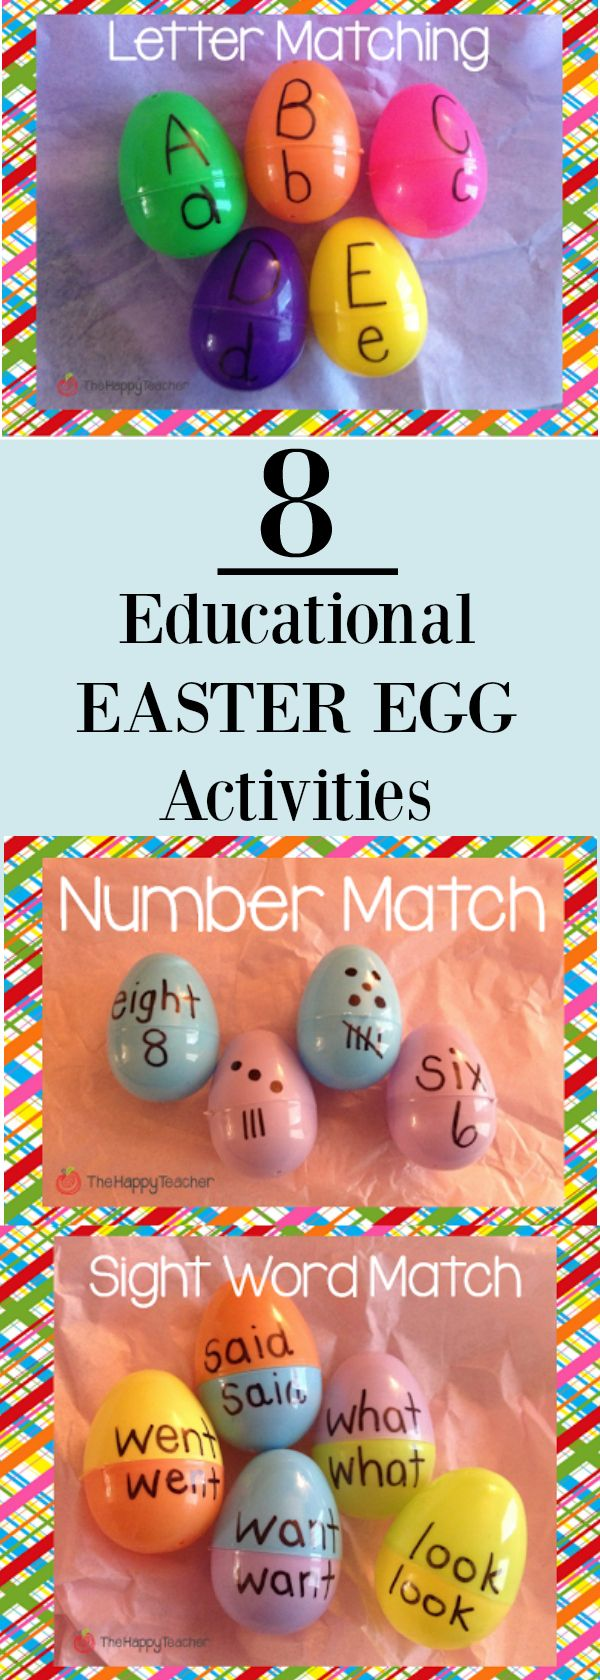 Your students will be learning, having fun, and celebrating the joy of Easter with these educational Easter egg activities.